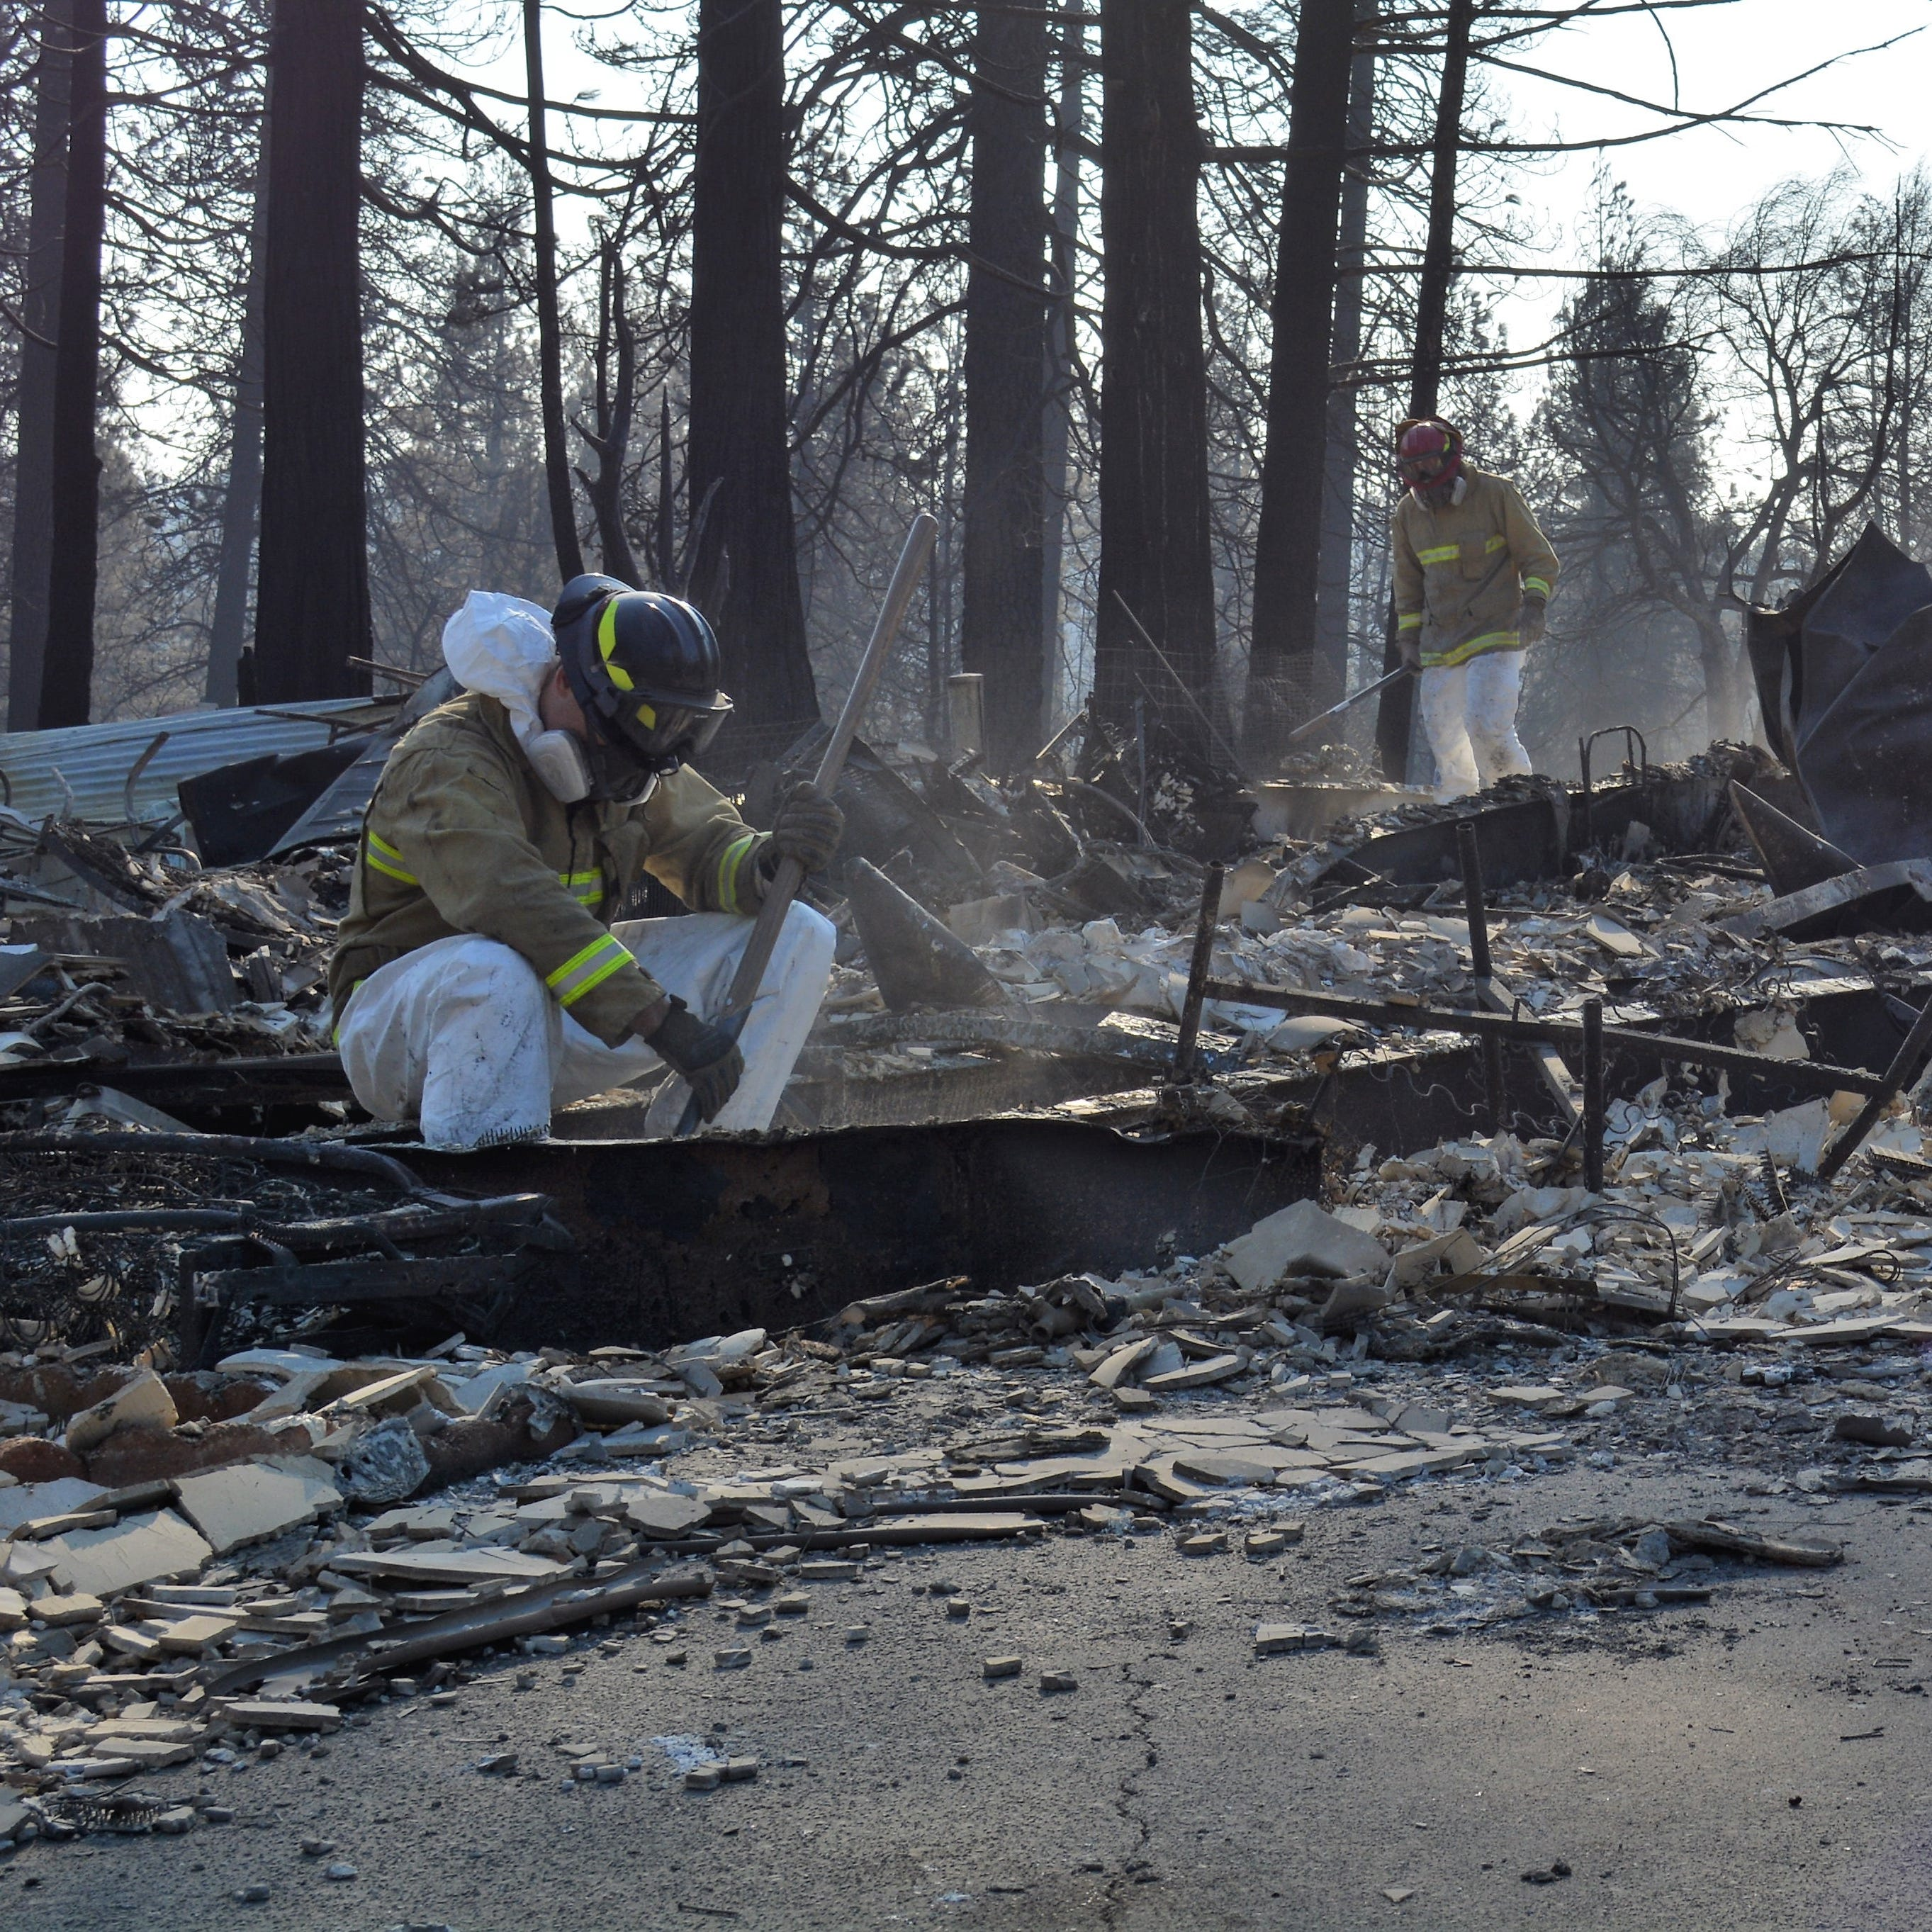 With rain moving in, Camp Fire searchers 'up against the clock' to find remains